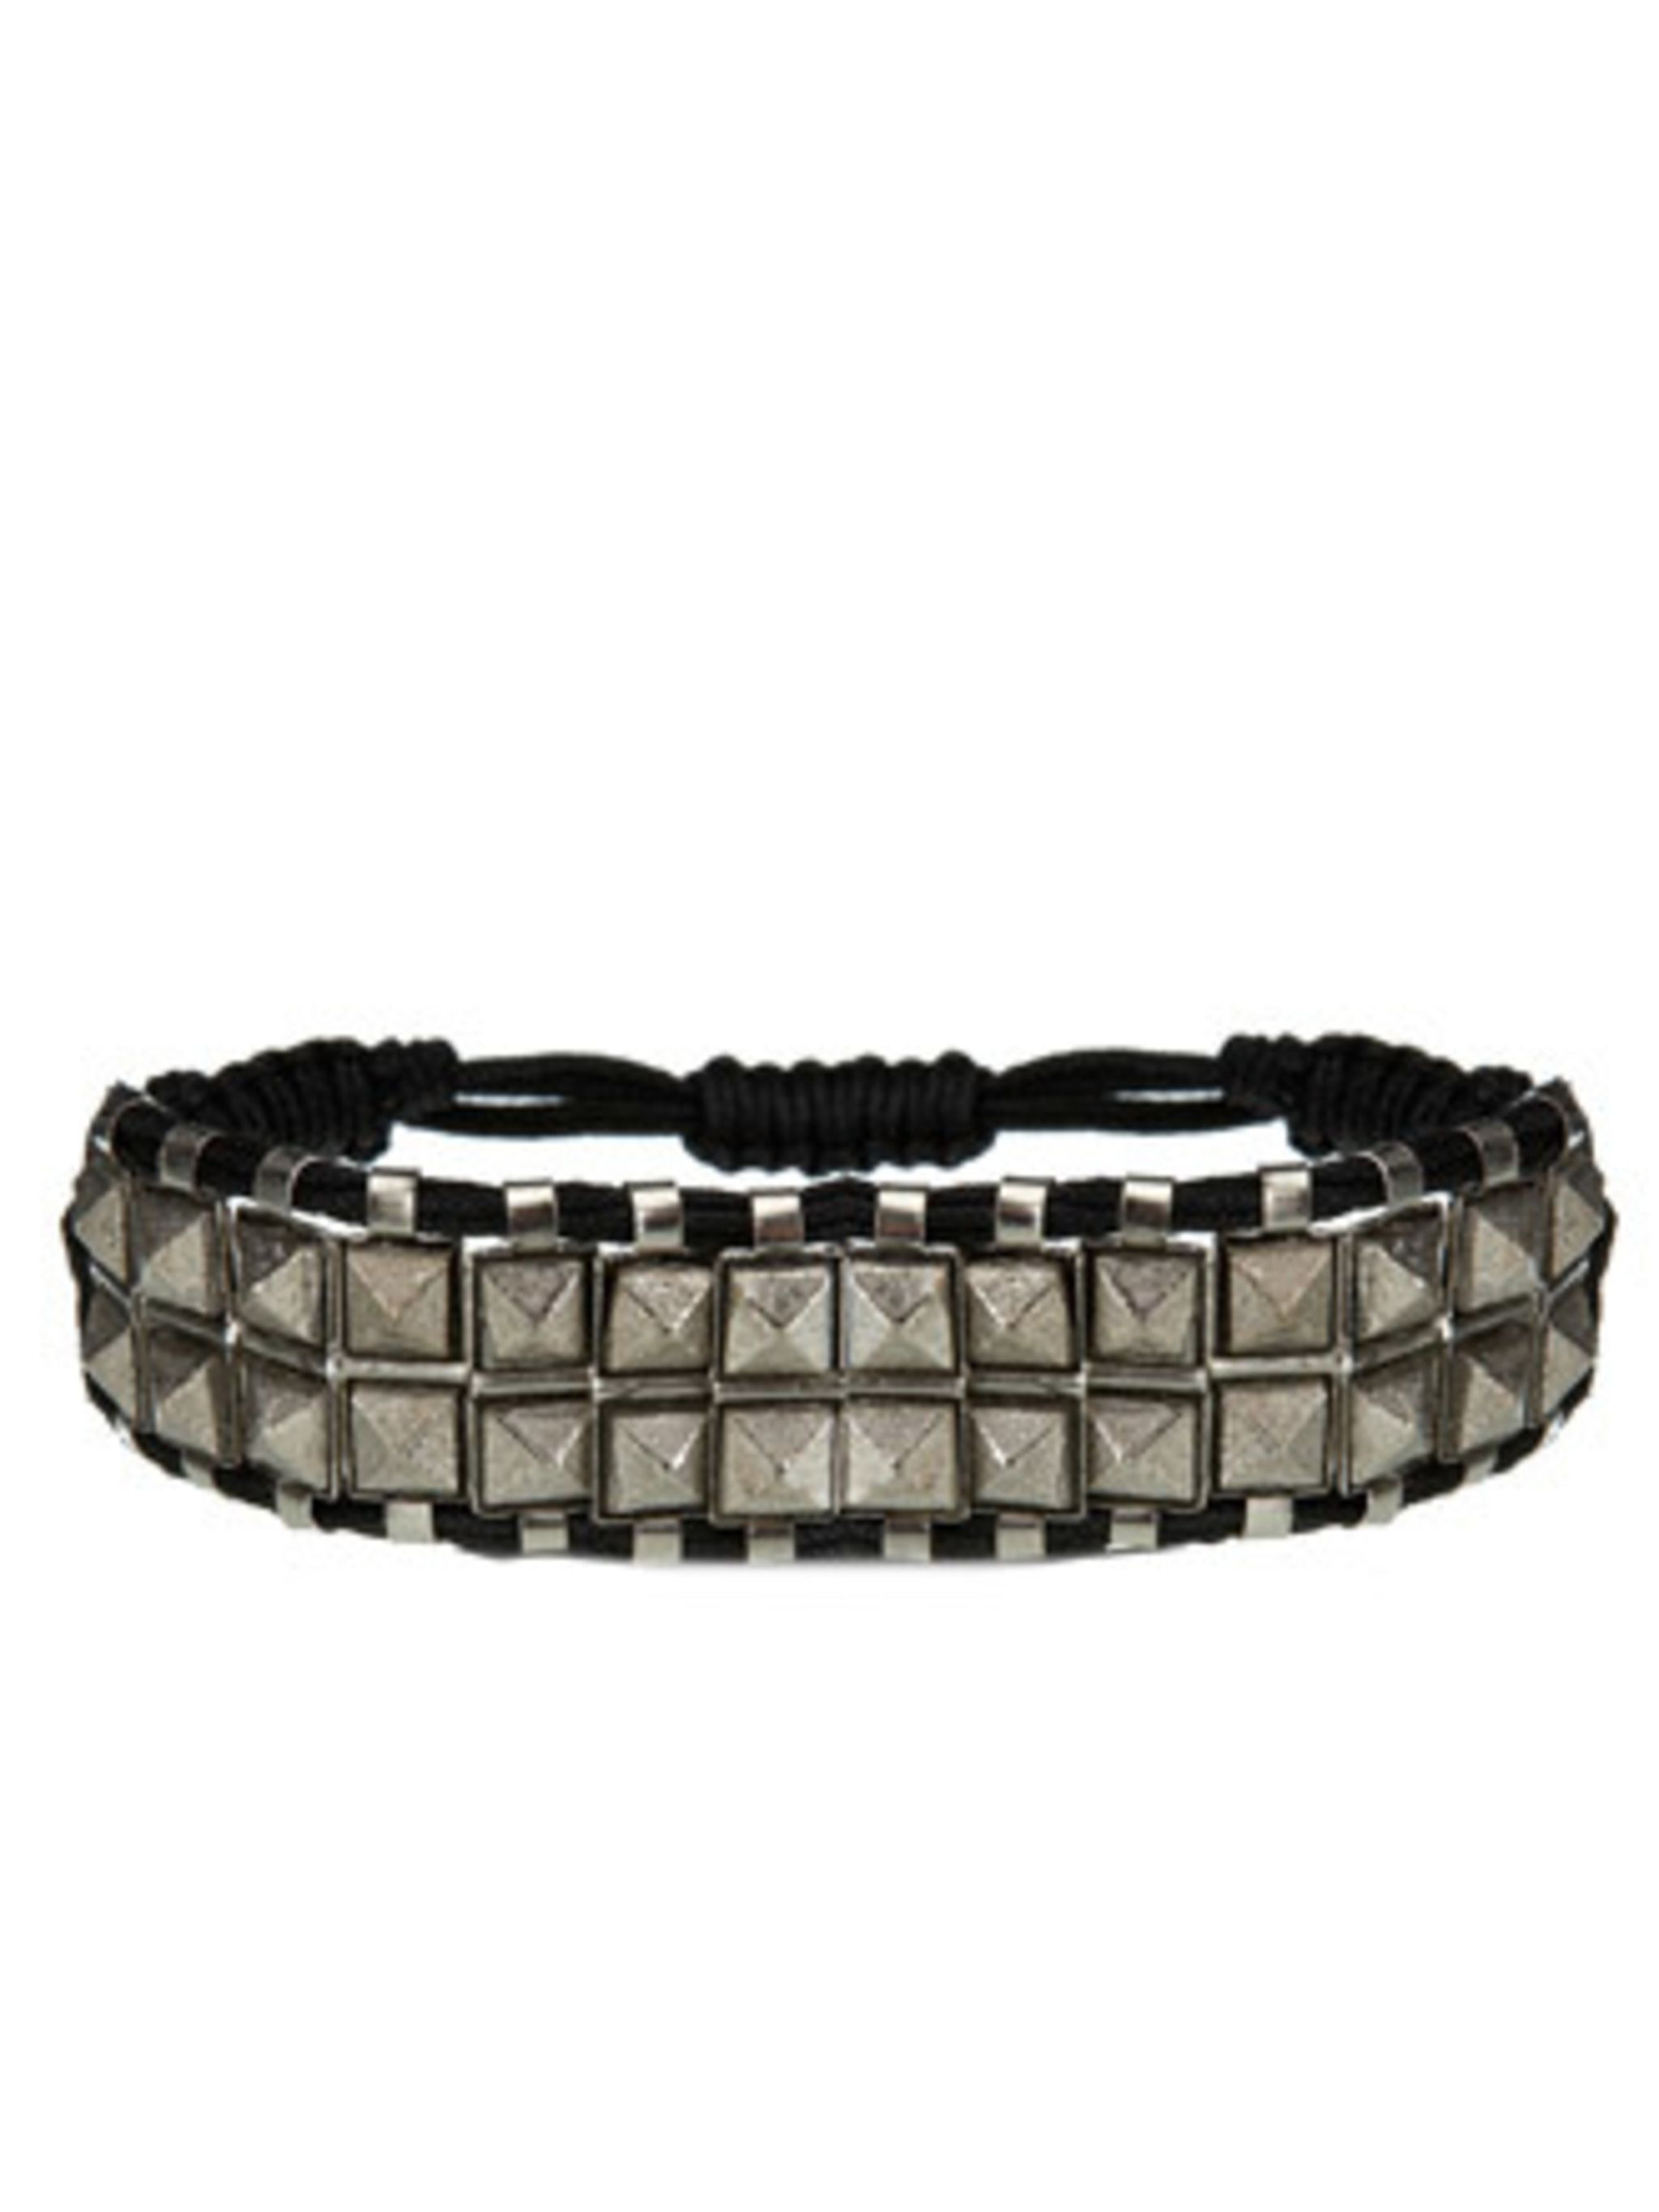 """<p>This studded bracelet will add much needed edge to summer florals and will look great paired with dark teal nails (the a/w shade) come winter.Bracelet, £70 by Shashi at <a href=""""http://www.bunnyhug.co.uk/fashionshop/gbu0-prodshow/Shashi_Rocker_Stud_Bra"""